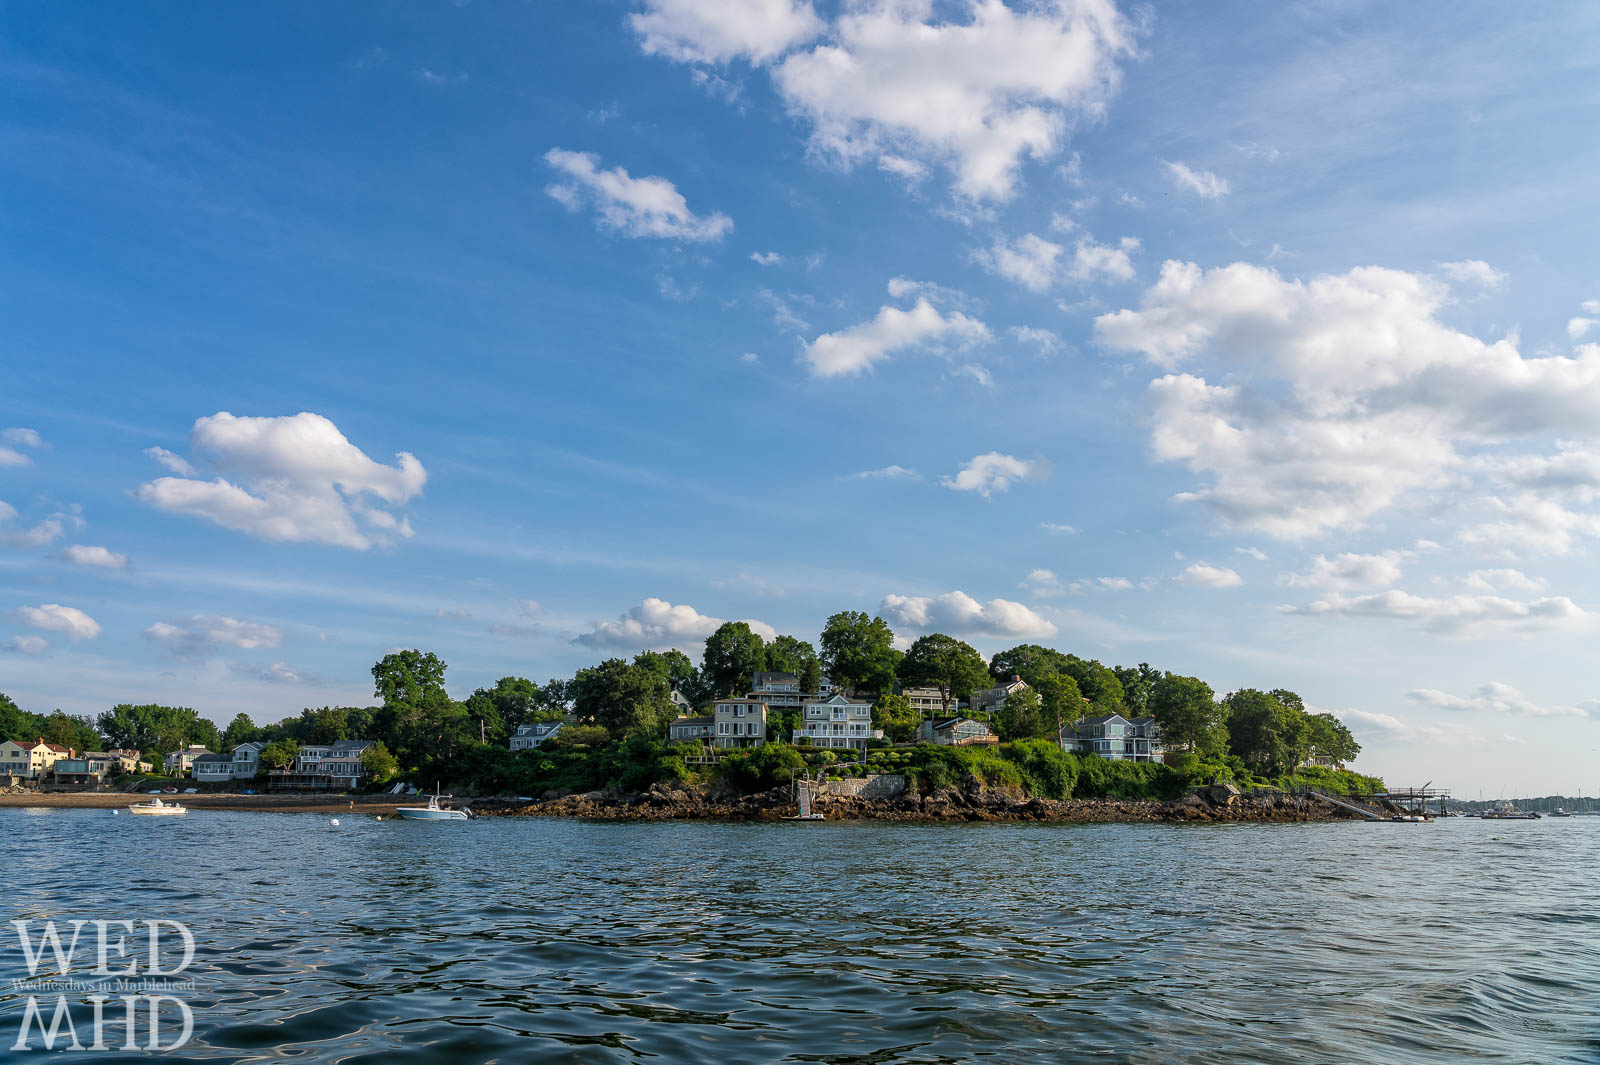 View of houses along Naugus Head in Marblehead from the water of Salem harbor on a warm summer evening